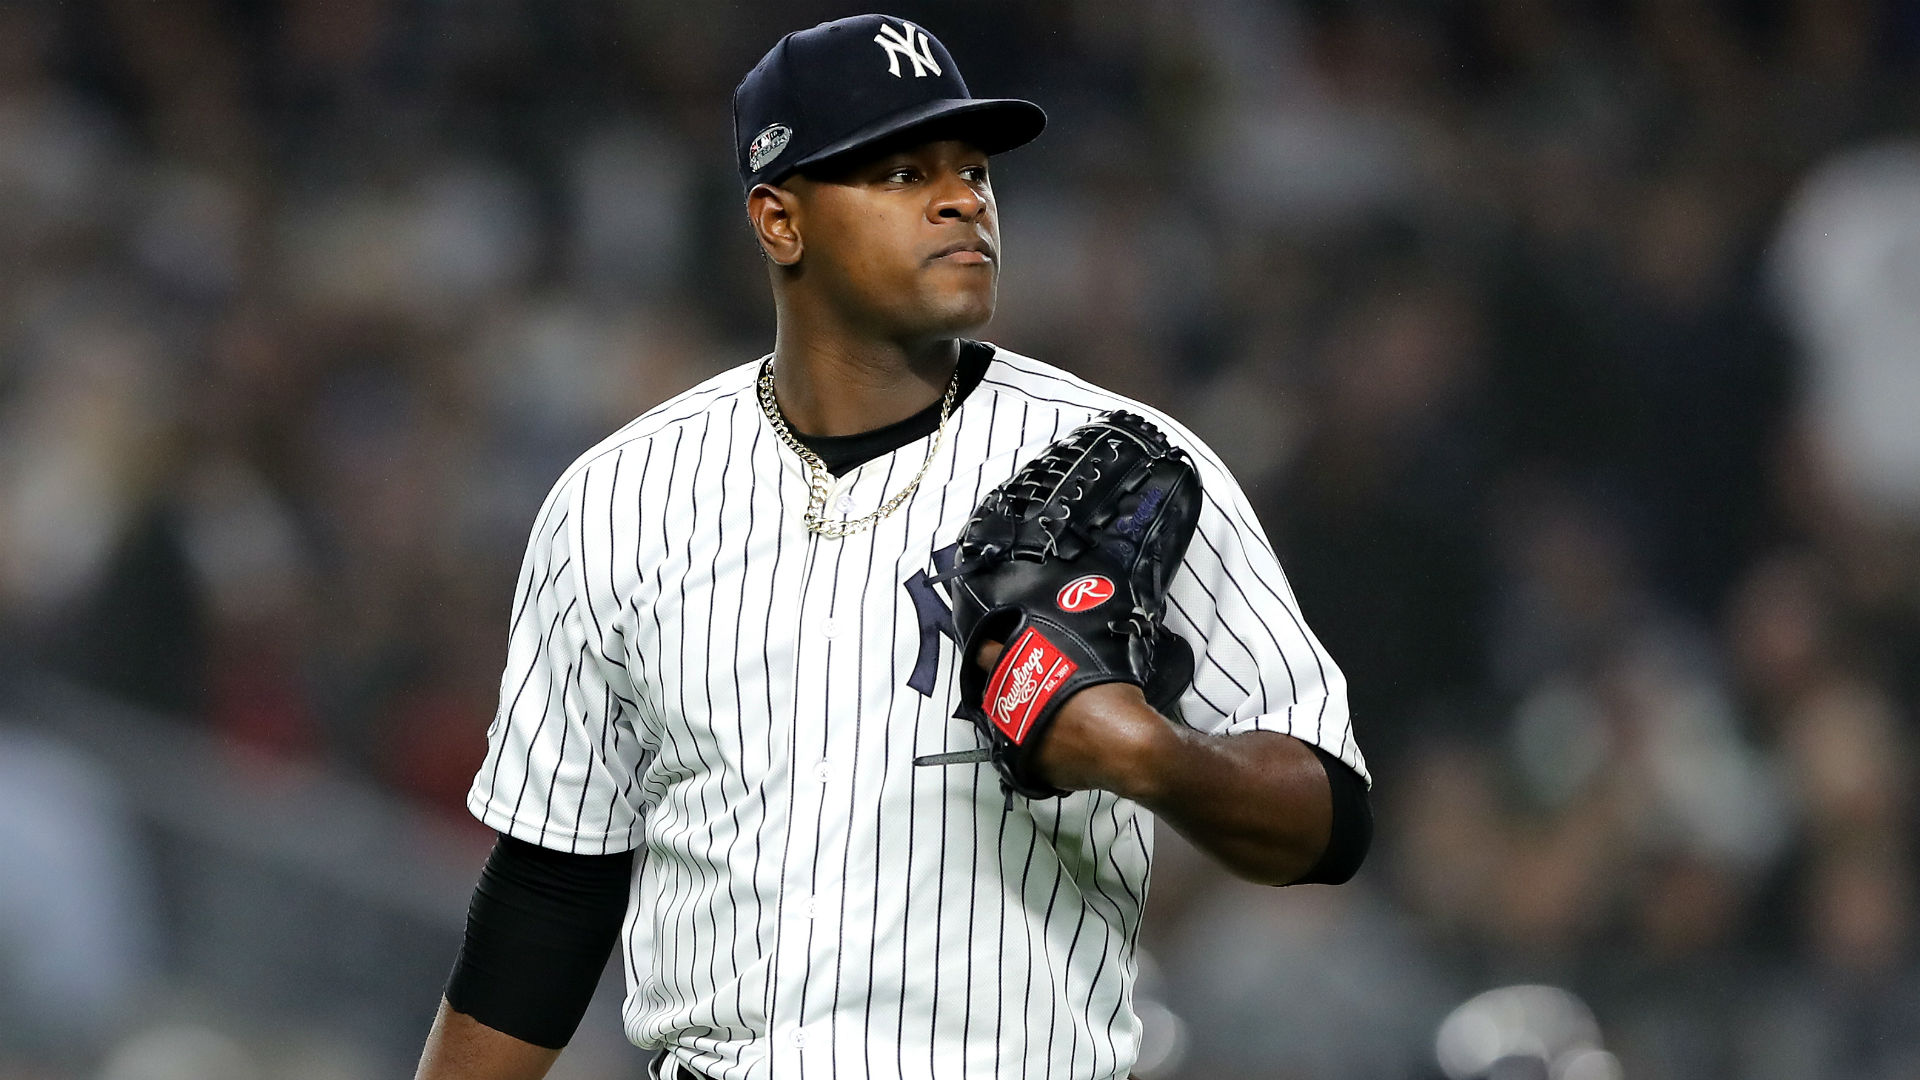 Luis Severino injury update: Yankees ace won't play until after All-Star game, GM Brian Cashman said